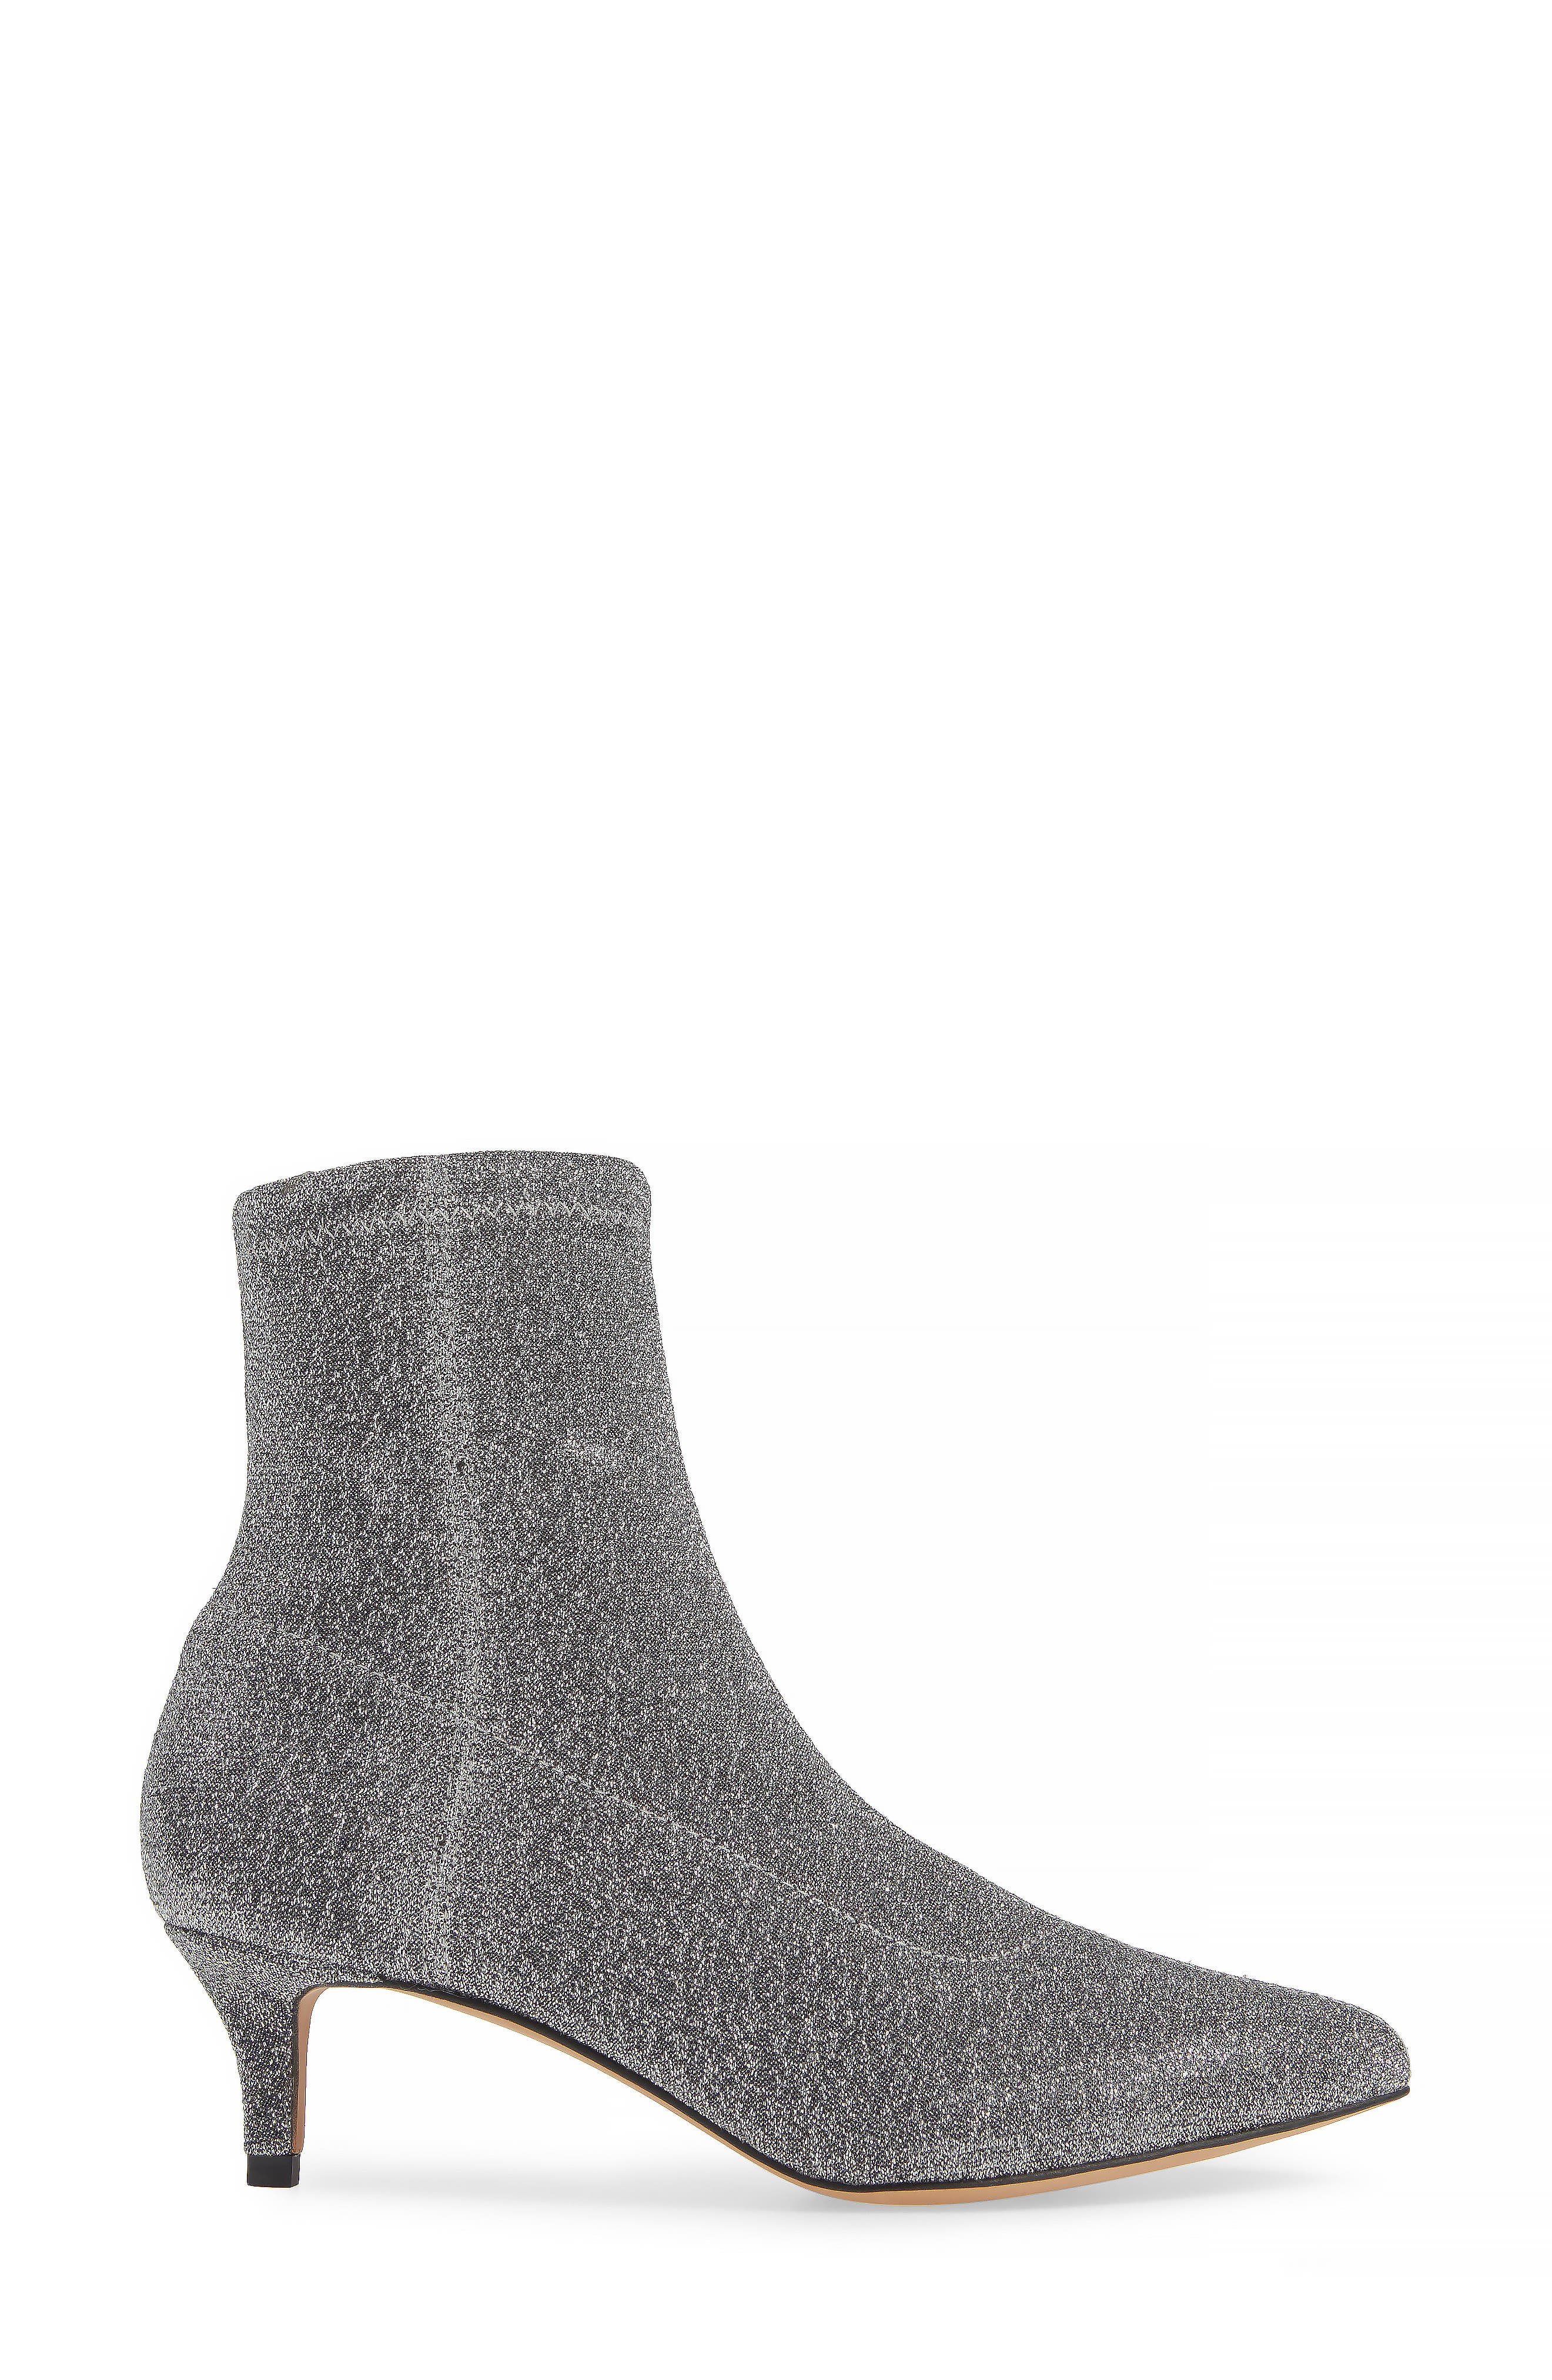 Sayres Bootie,                             Alternate thumbnail 3, color,                             SILVER FABRIC